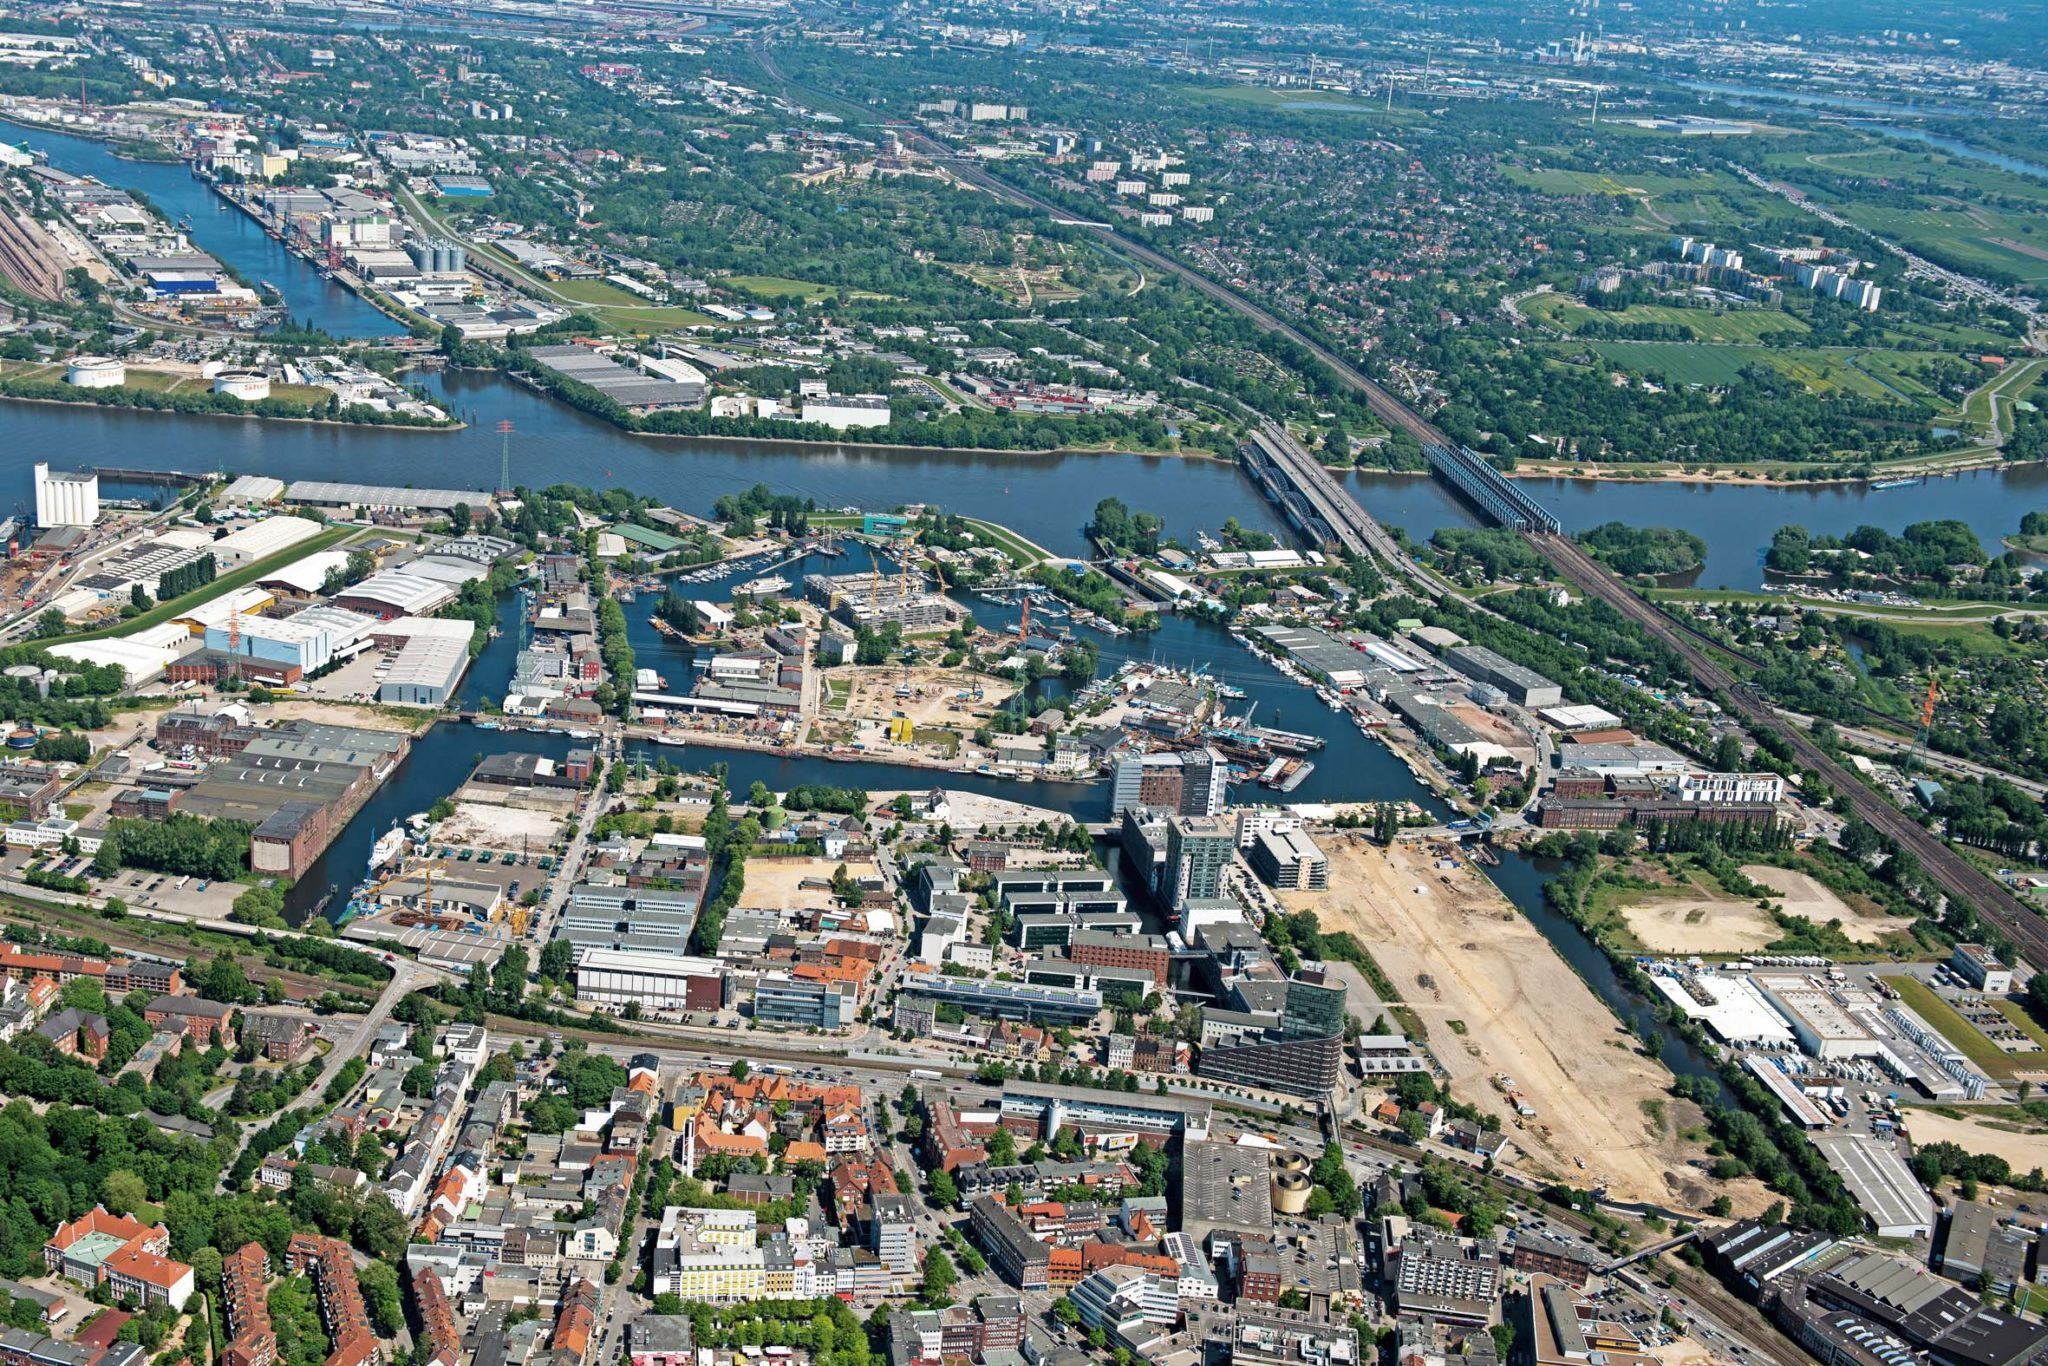 2012 – Luftbild channel hamburg